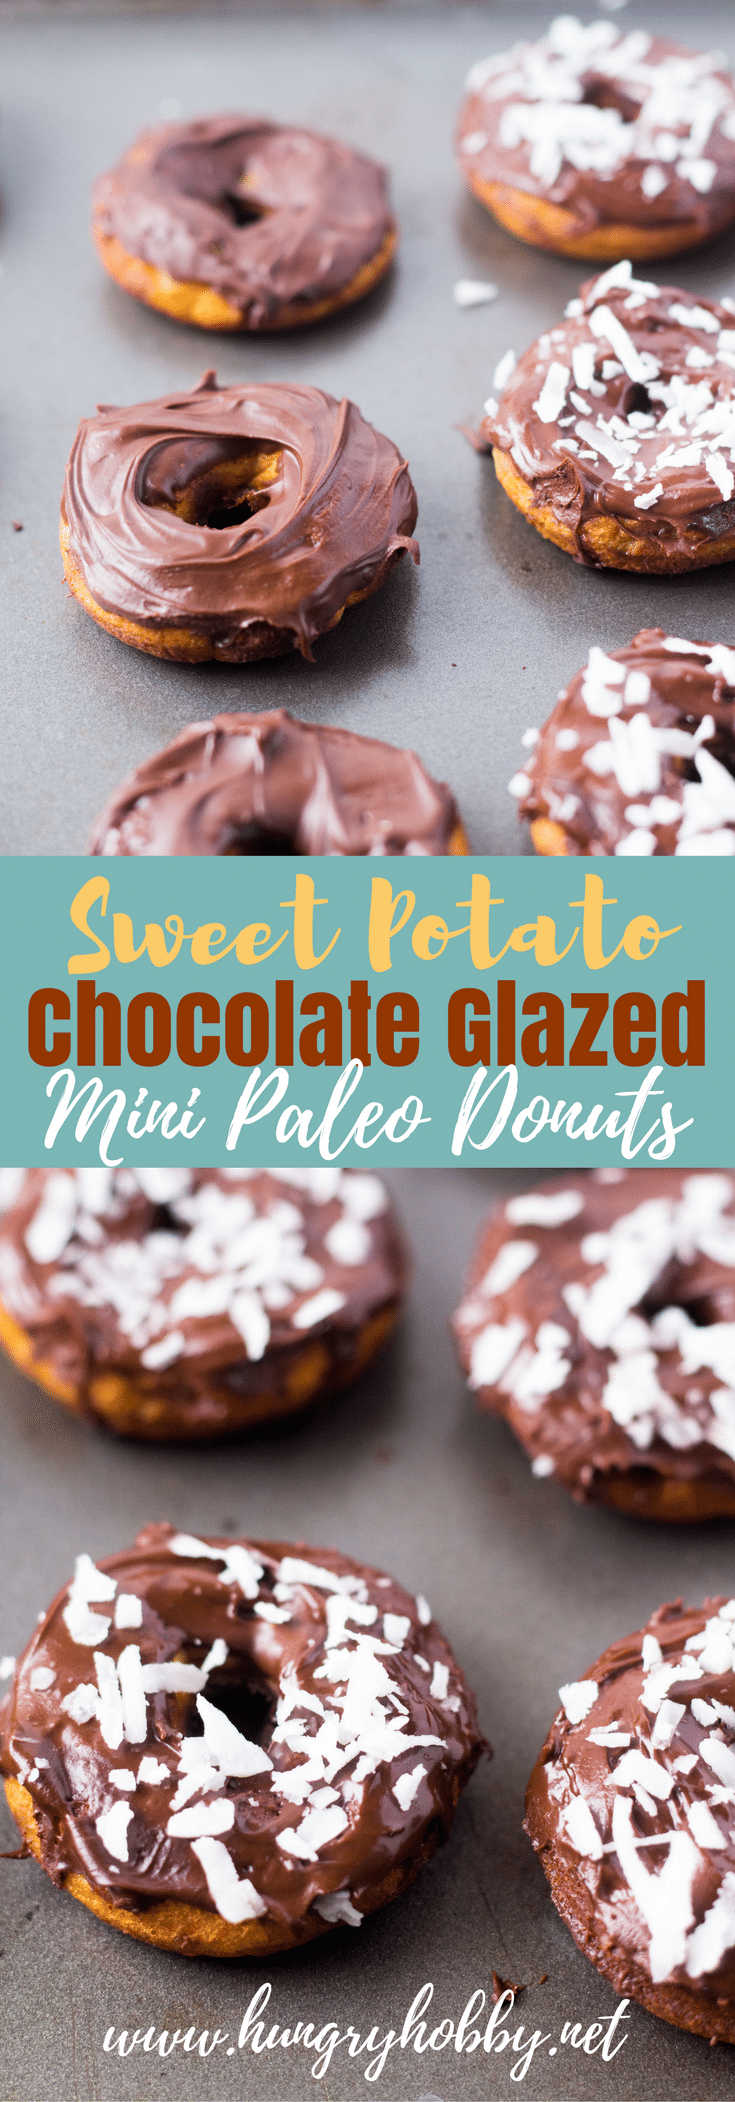 Think of a thick layer of chocolate glaze on top of a healthy gluten and dairy free mini sweet potato paleo donut!  A bite size treat you'll be famous for!